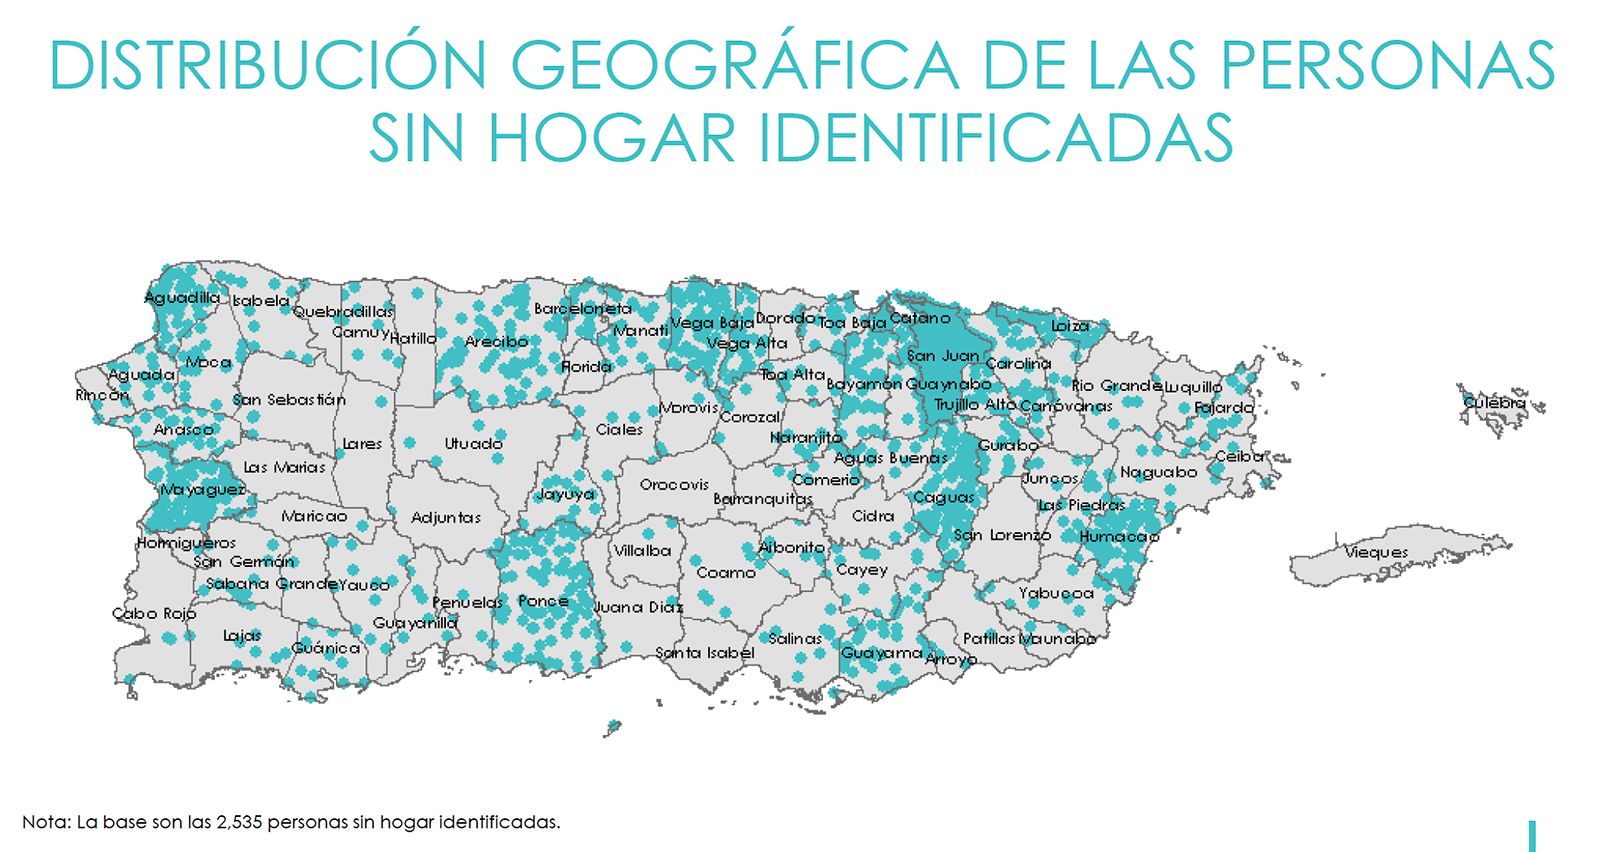 Geographic distribution of homeless in Puerto Rico